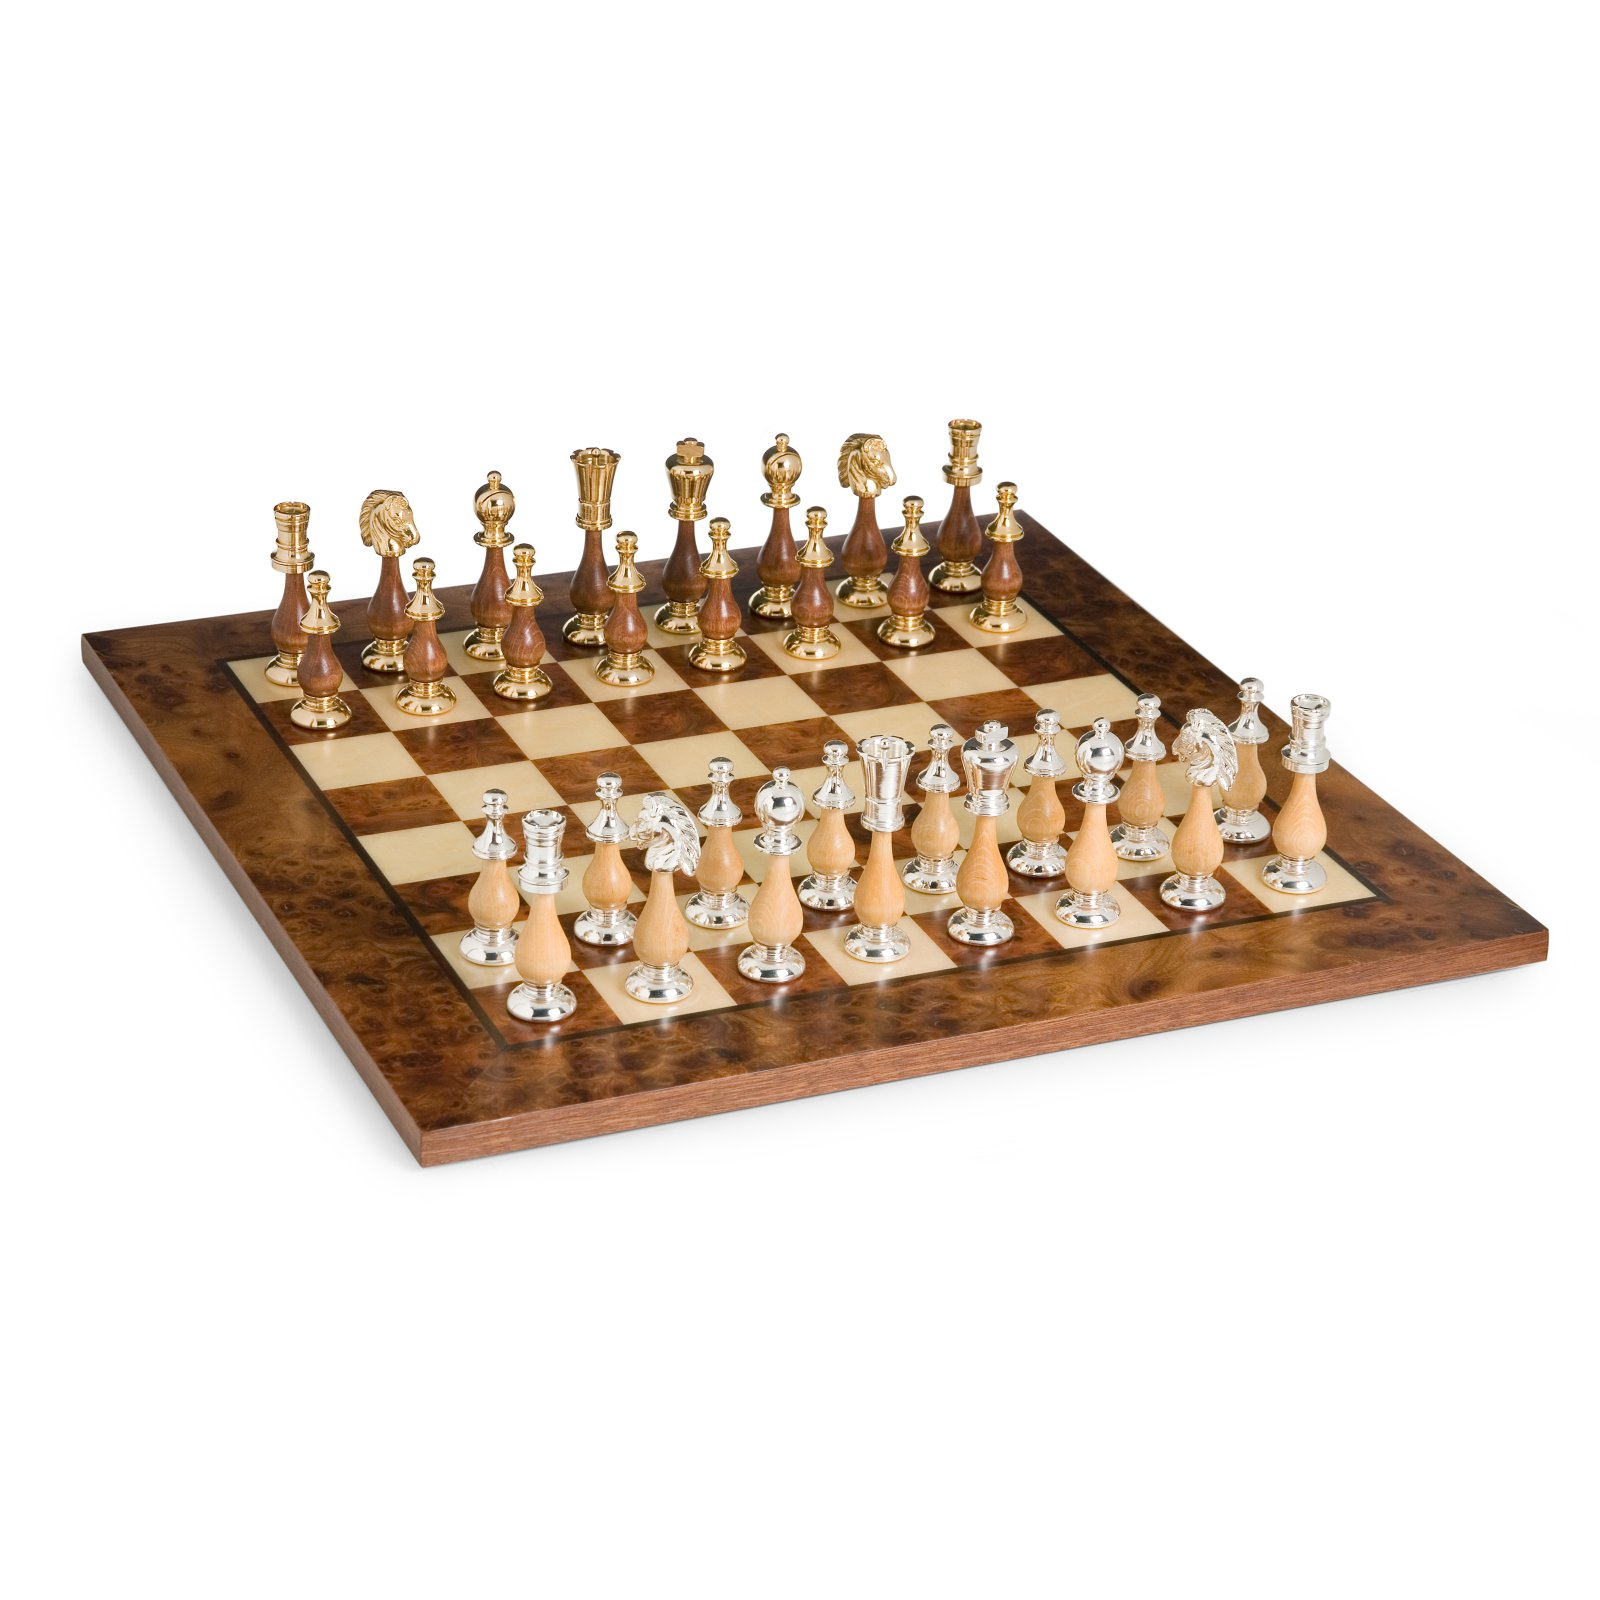 Elegant Gold, Silver & Wood Chess Set